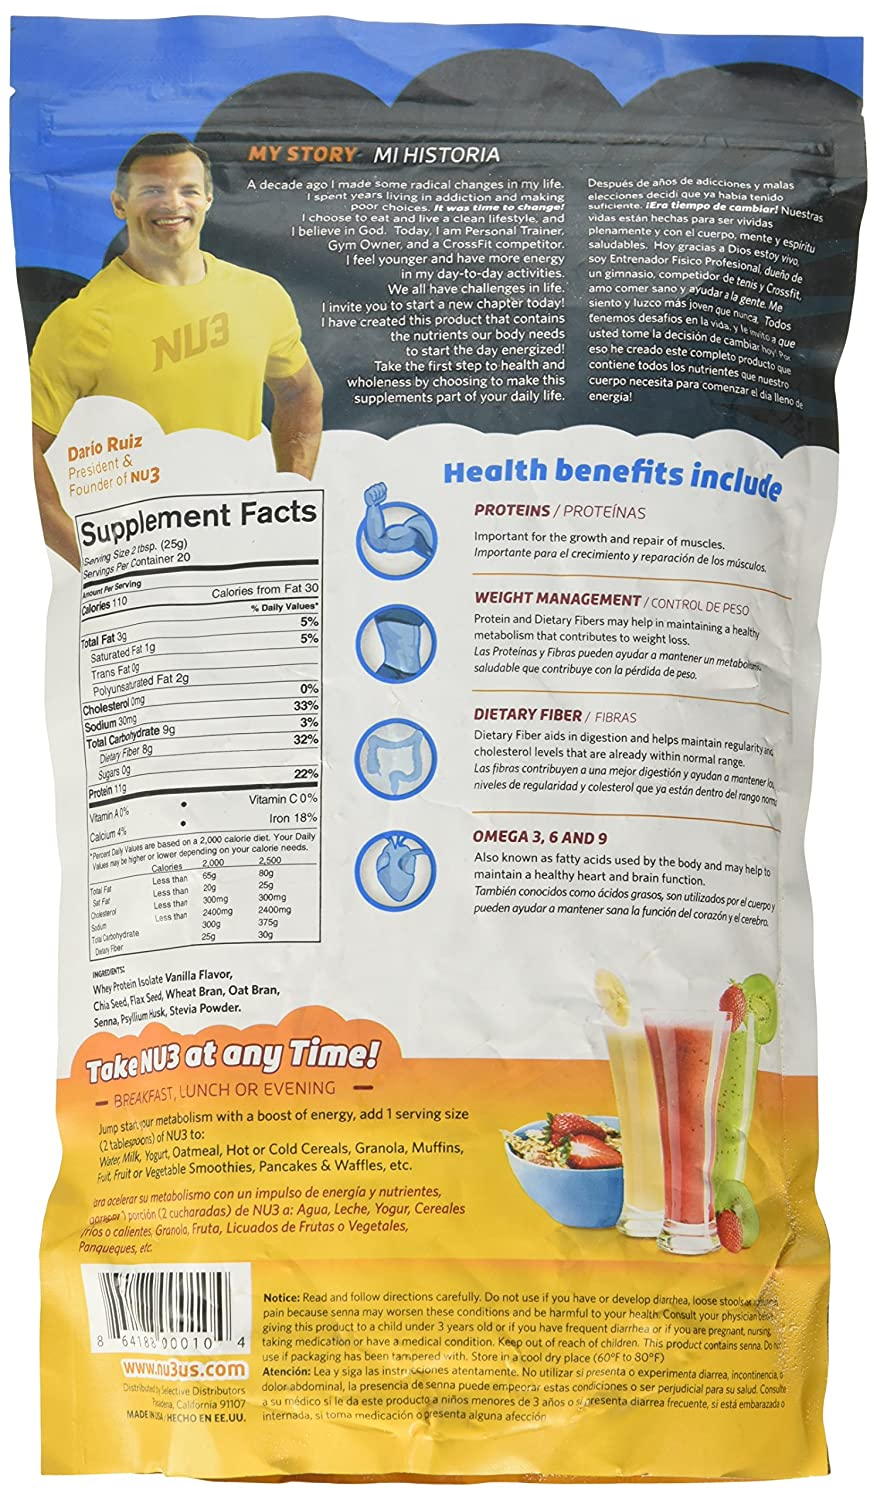 Amazon.com: Nu3 Fiber, Protein and Chia Supplement, Vanilla, 17.60 Ounce: Health & Personal Care